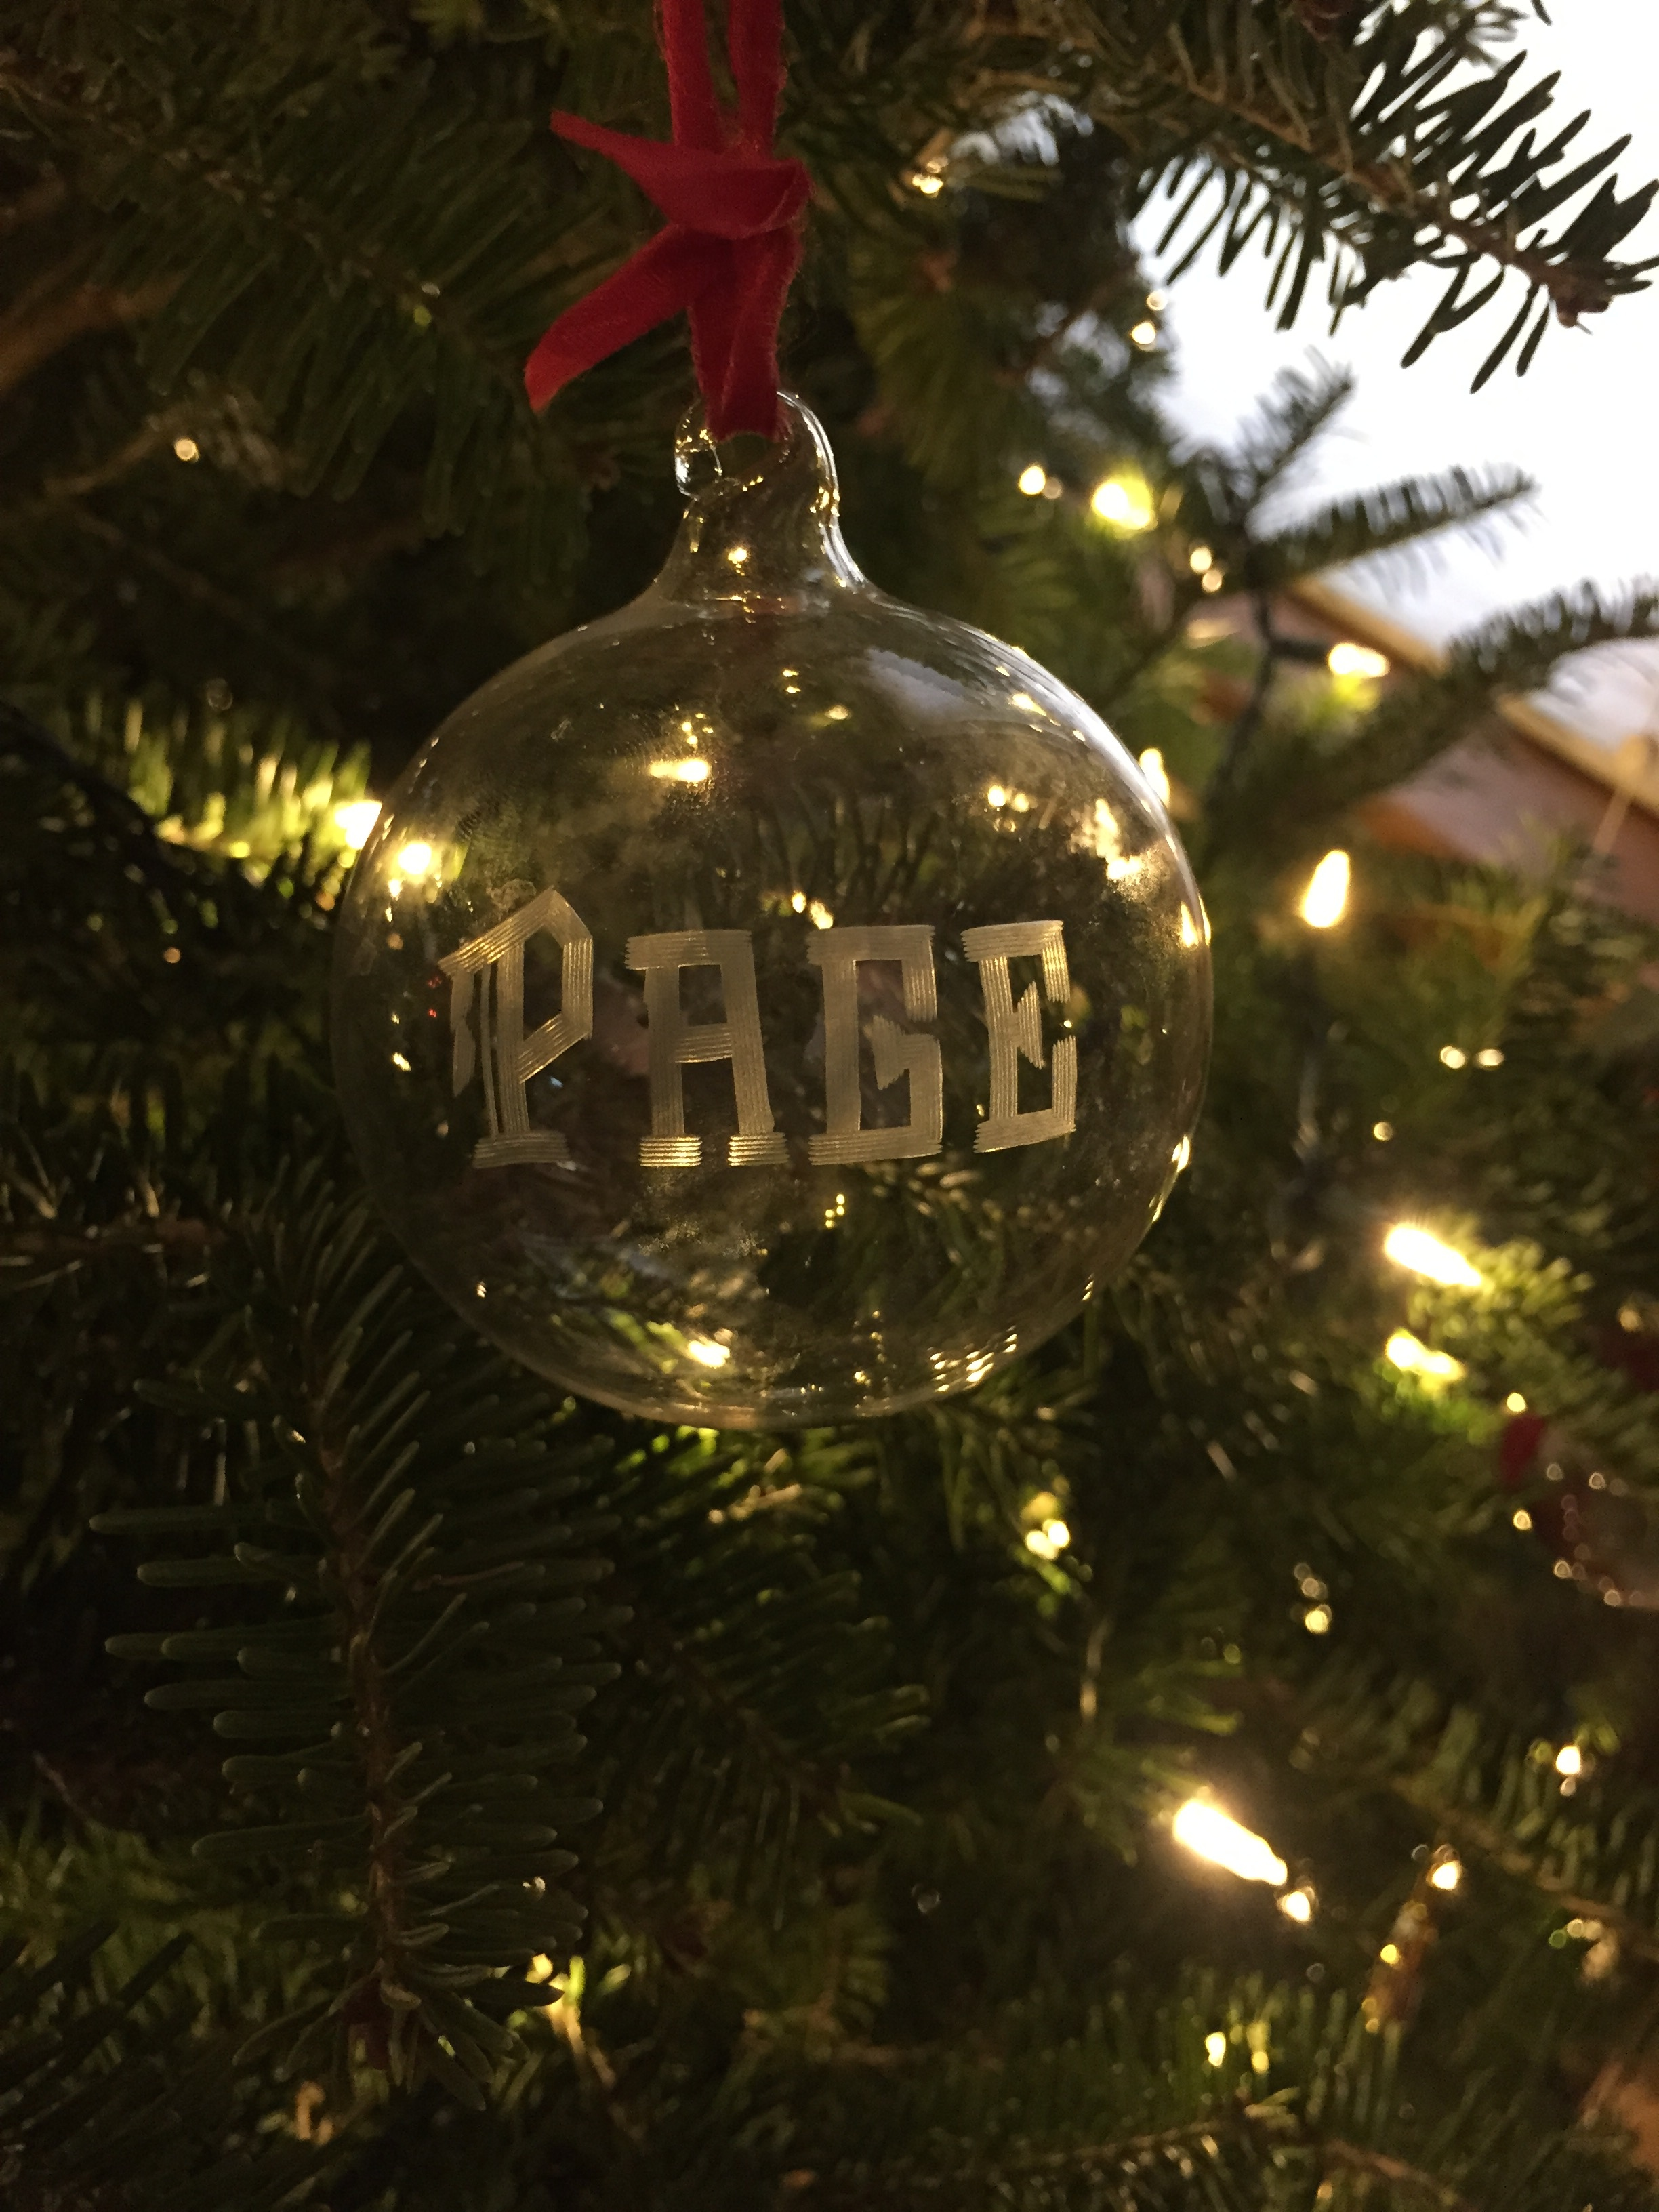 What Memories Are On Your Tree? Don't You Love Each and Every Ornament?